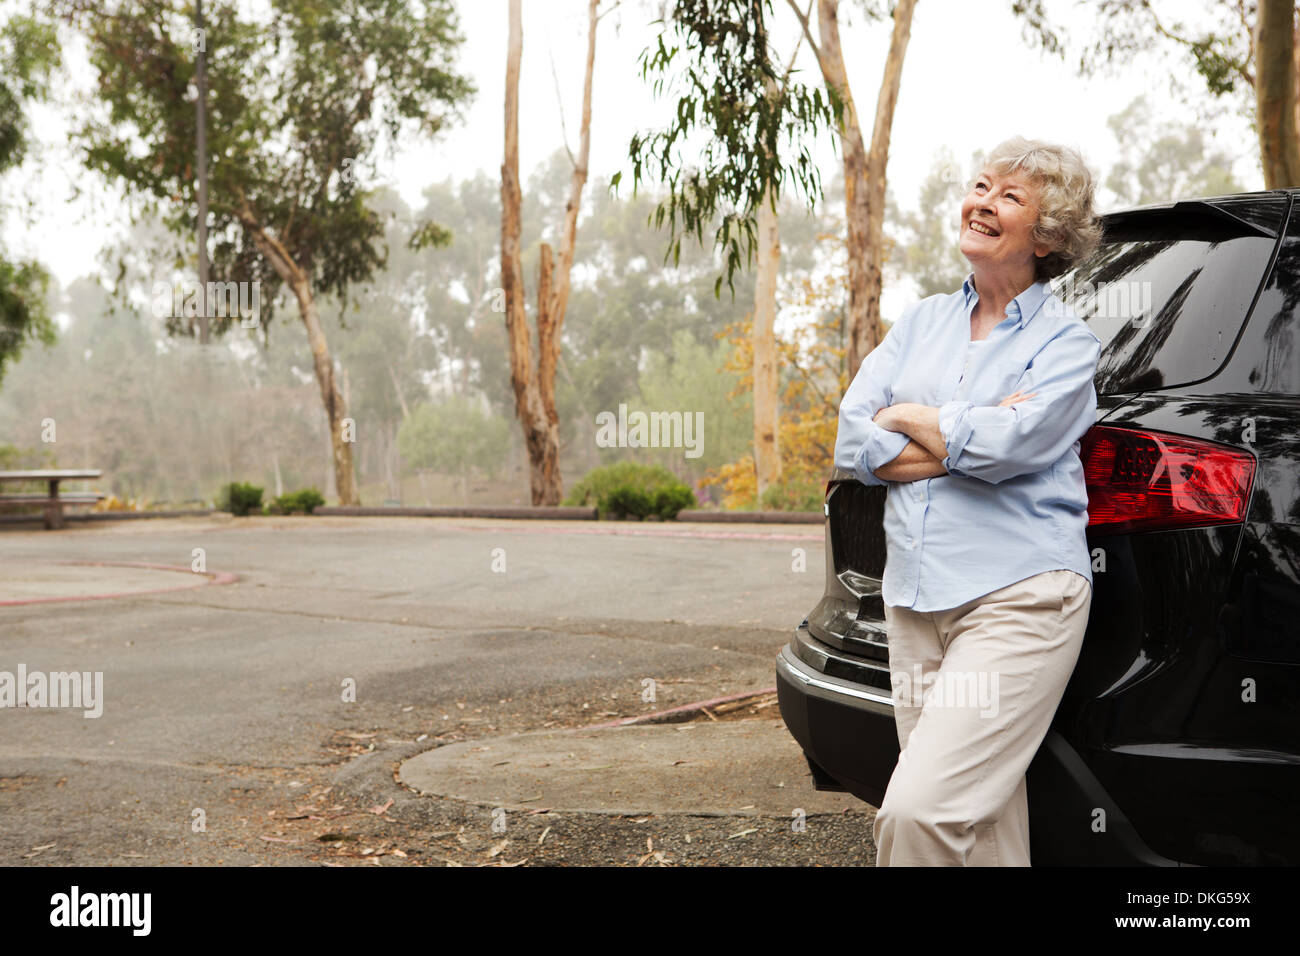 Senior woman standing against rear of black vehicle - Stock Image